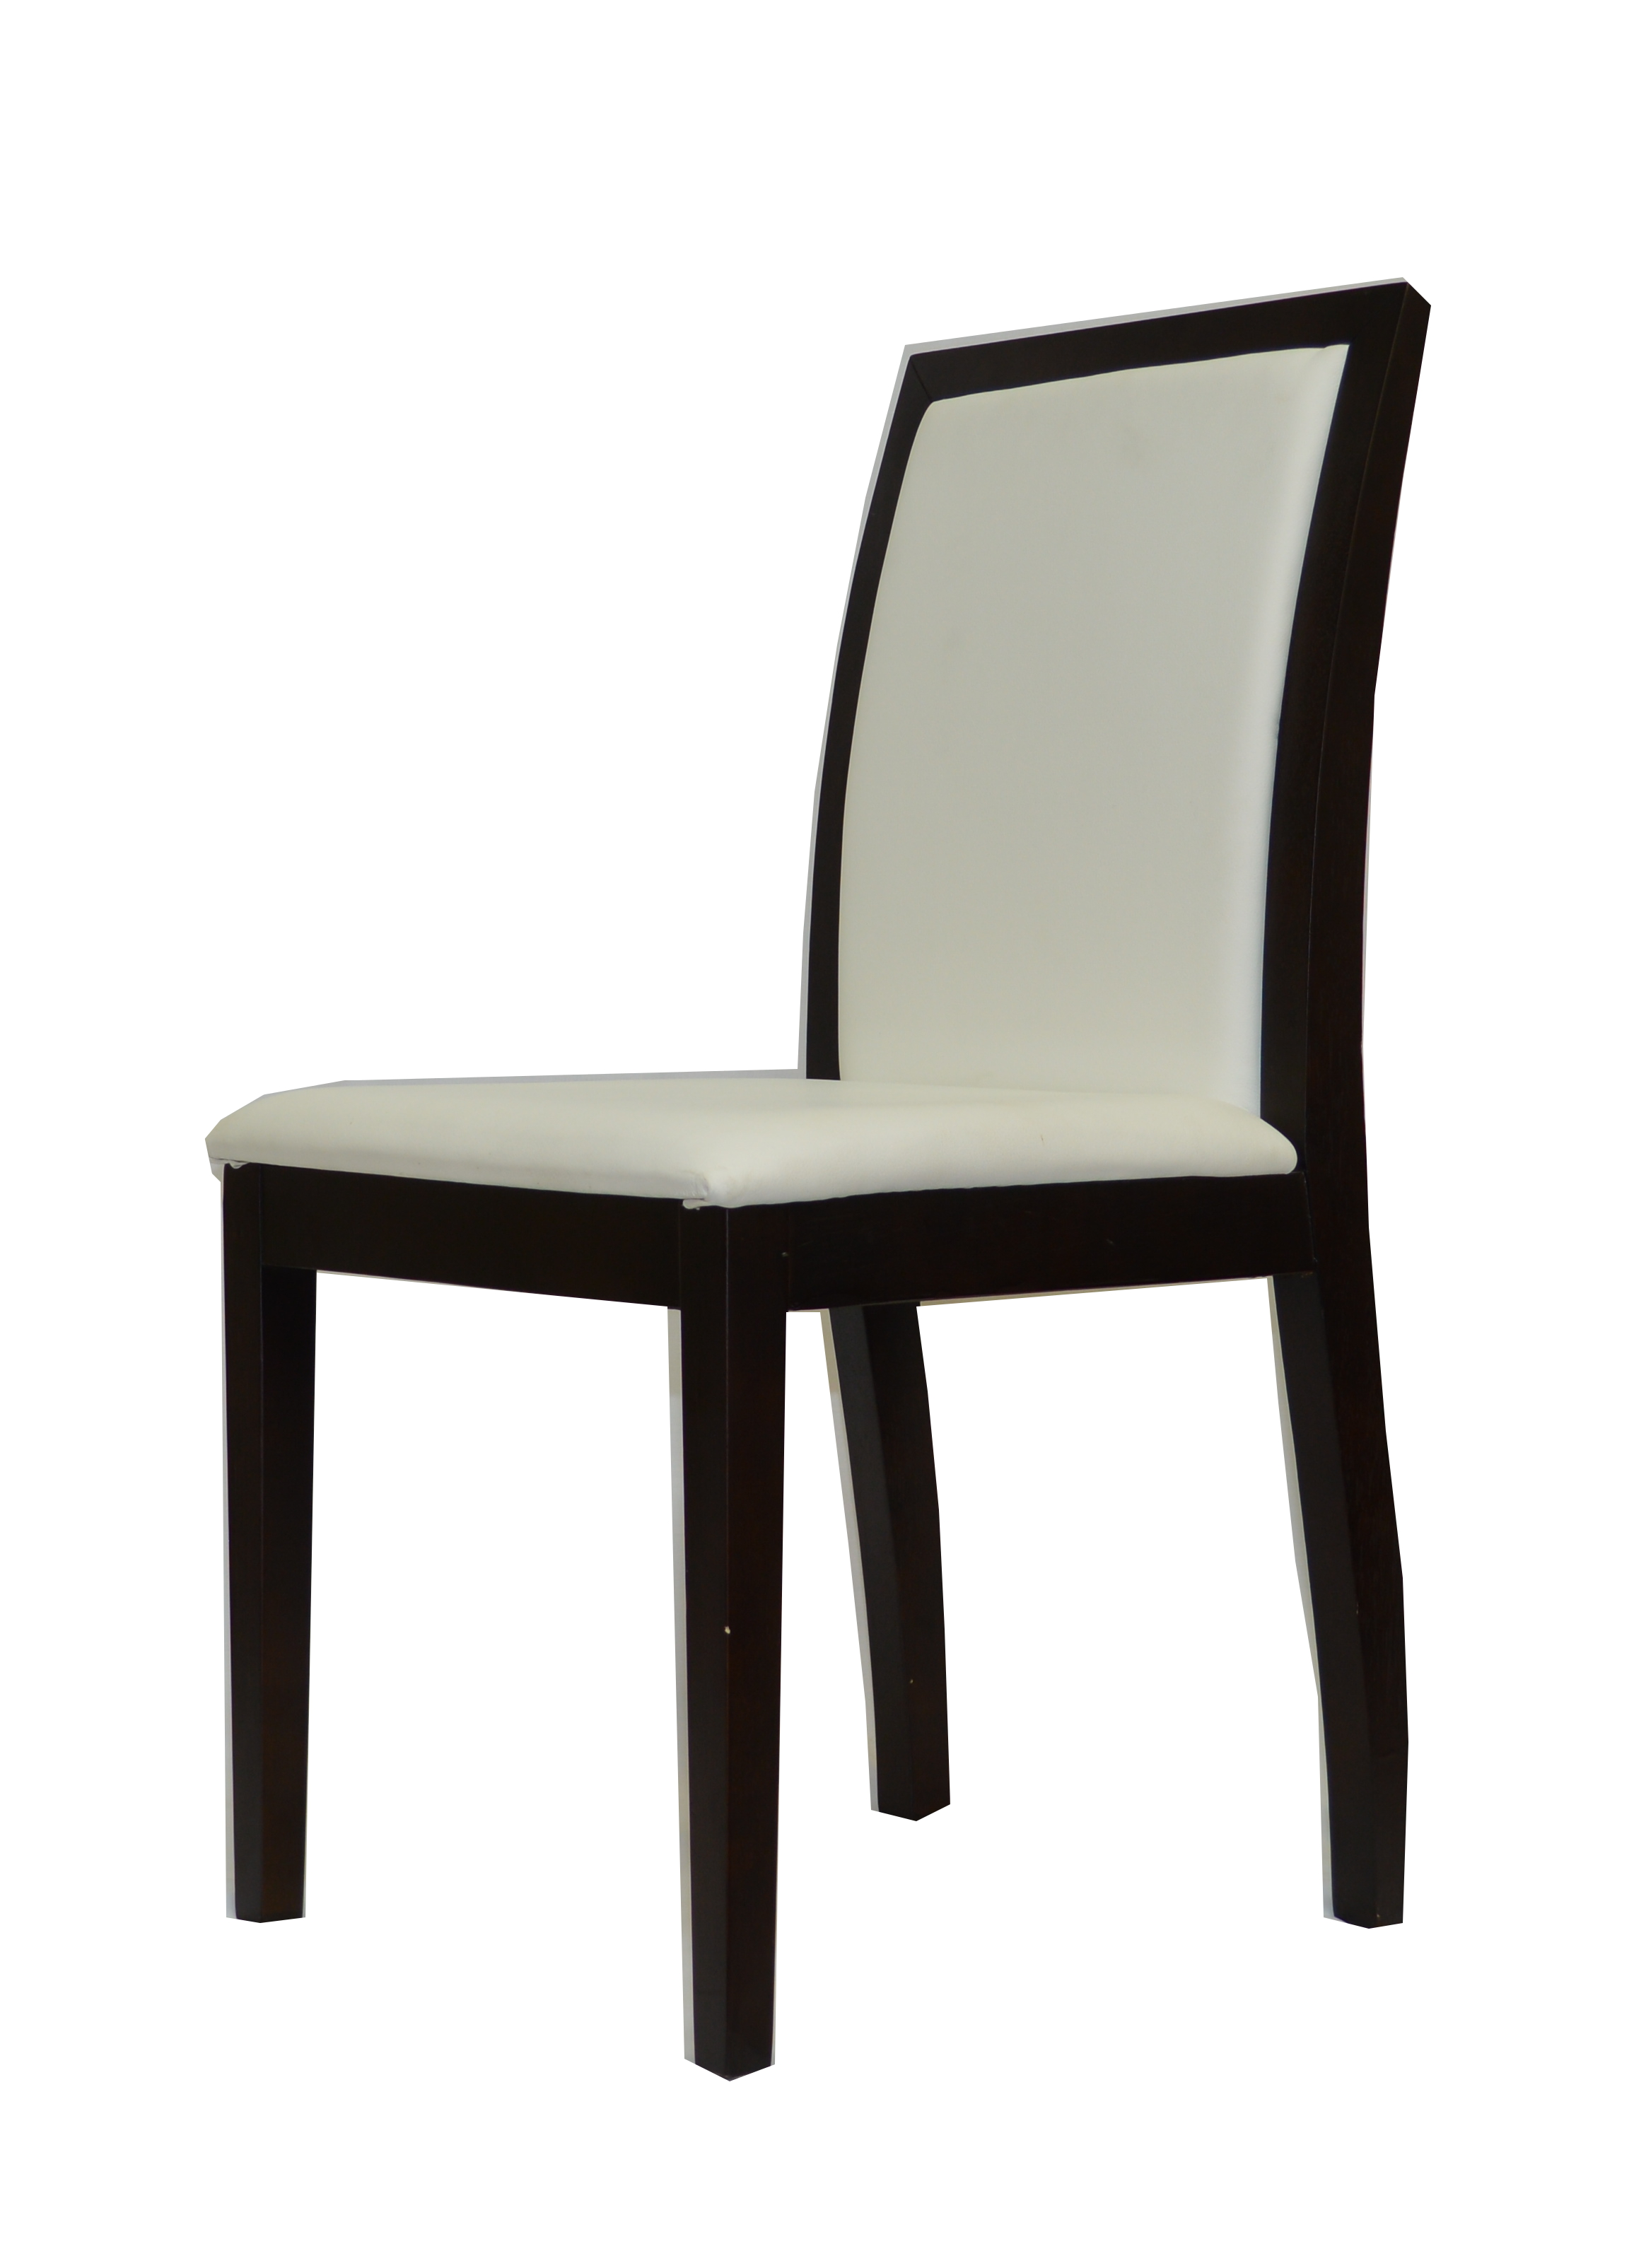 Chairs & Stool Rental for Home Staging by Luxury Furniture in Toronto